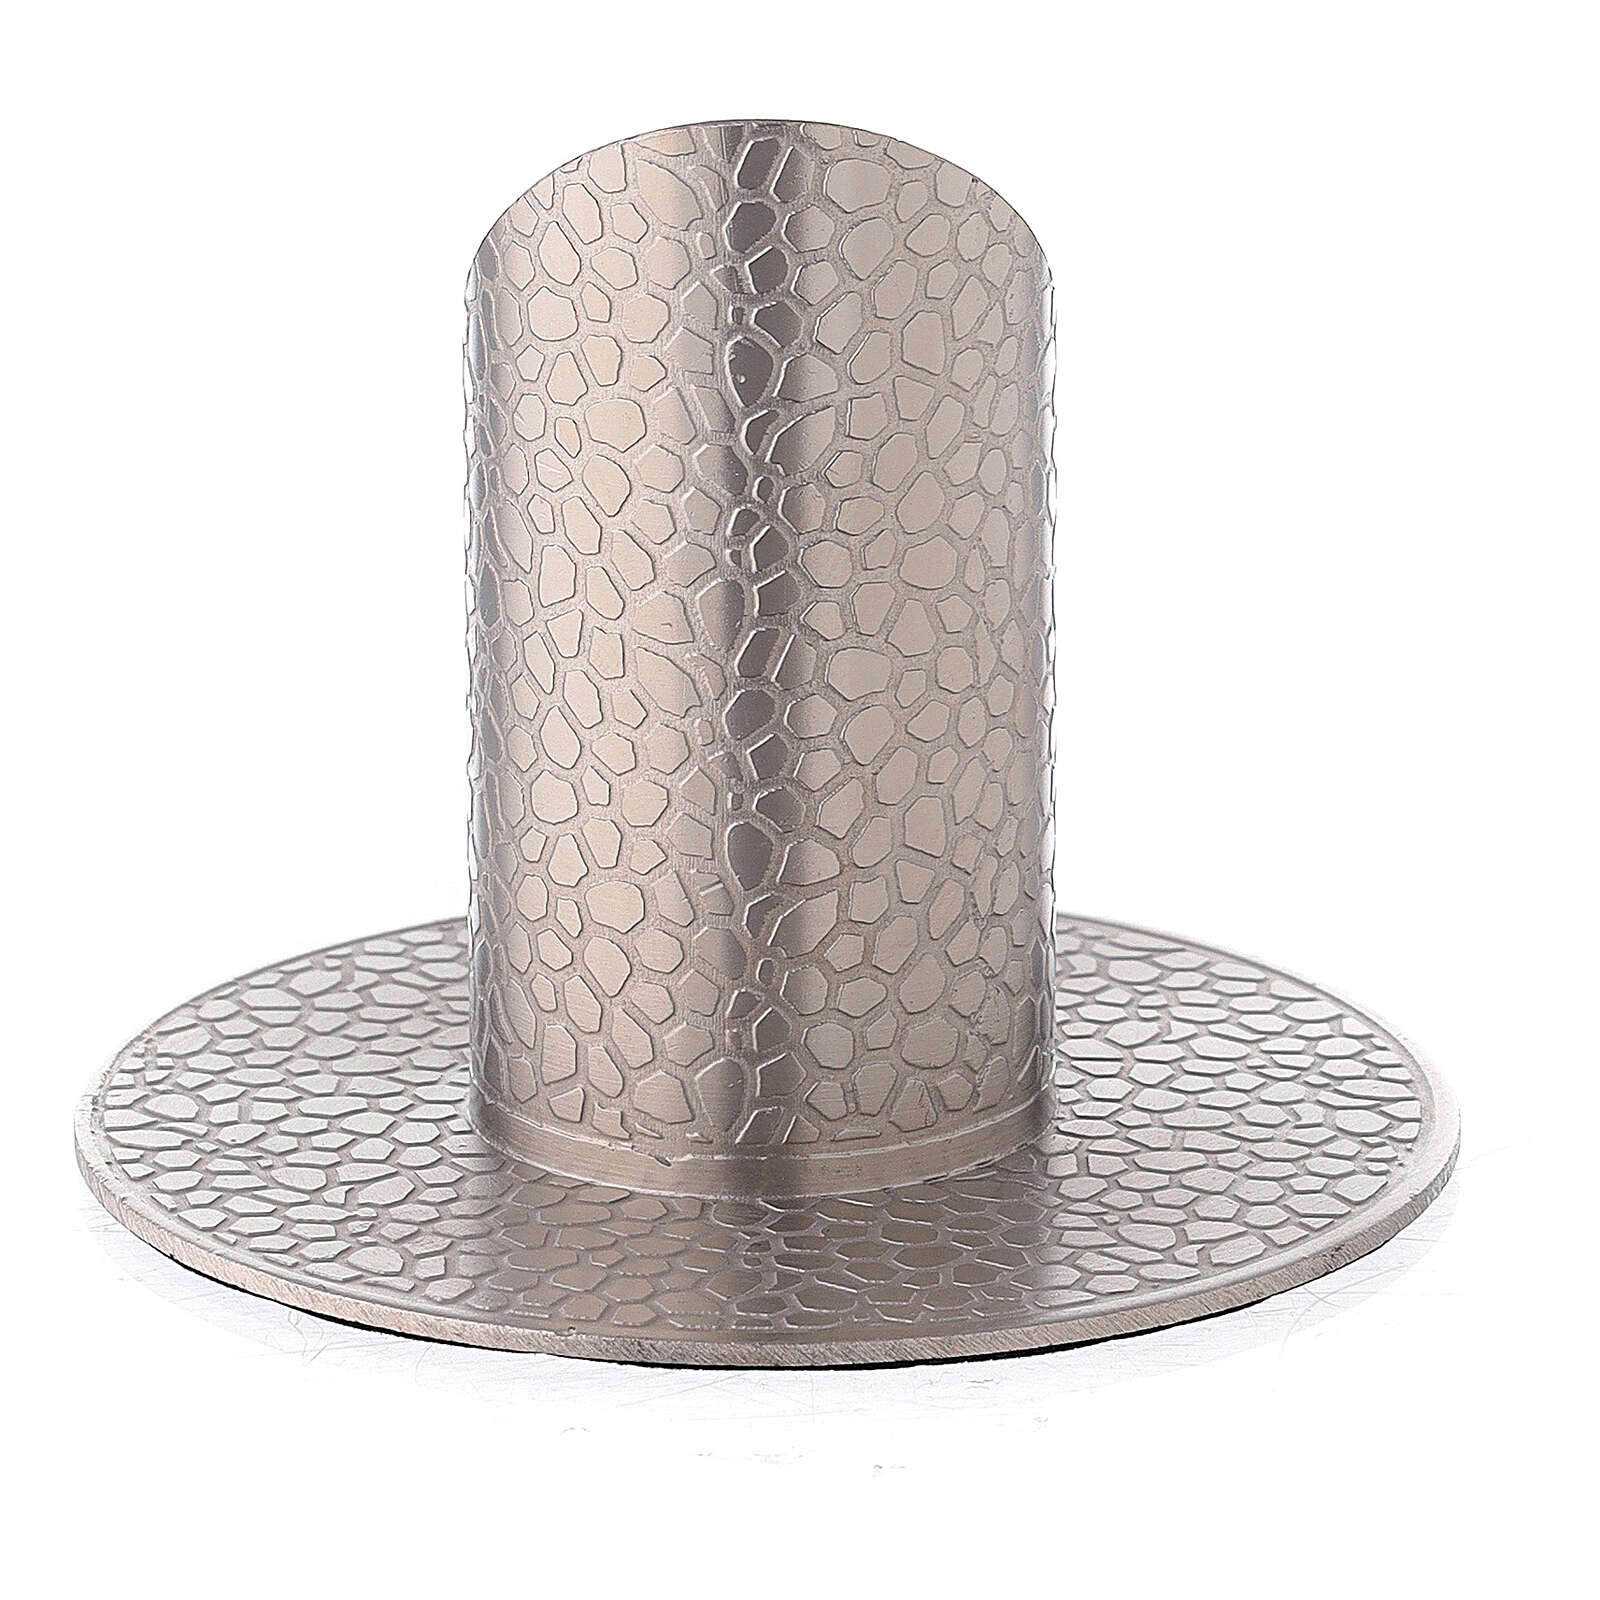 Nickel-plated brass candle holder with leather effect 1 1/4 in 3